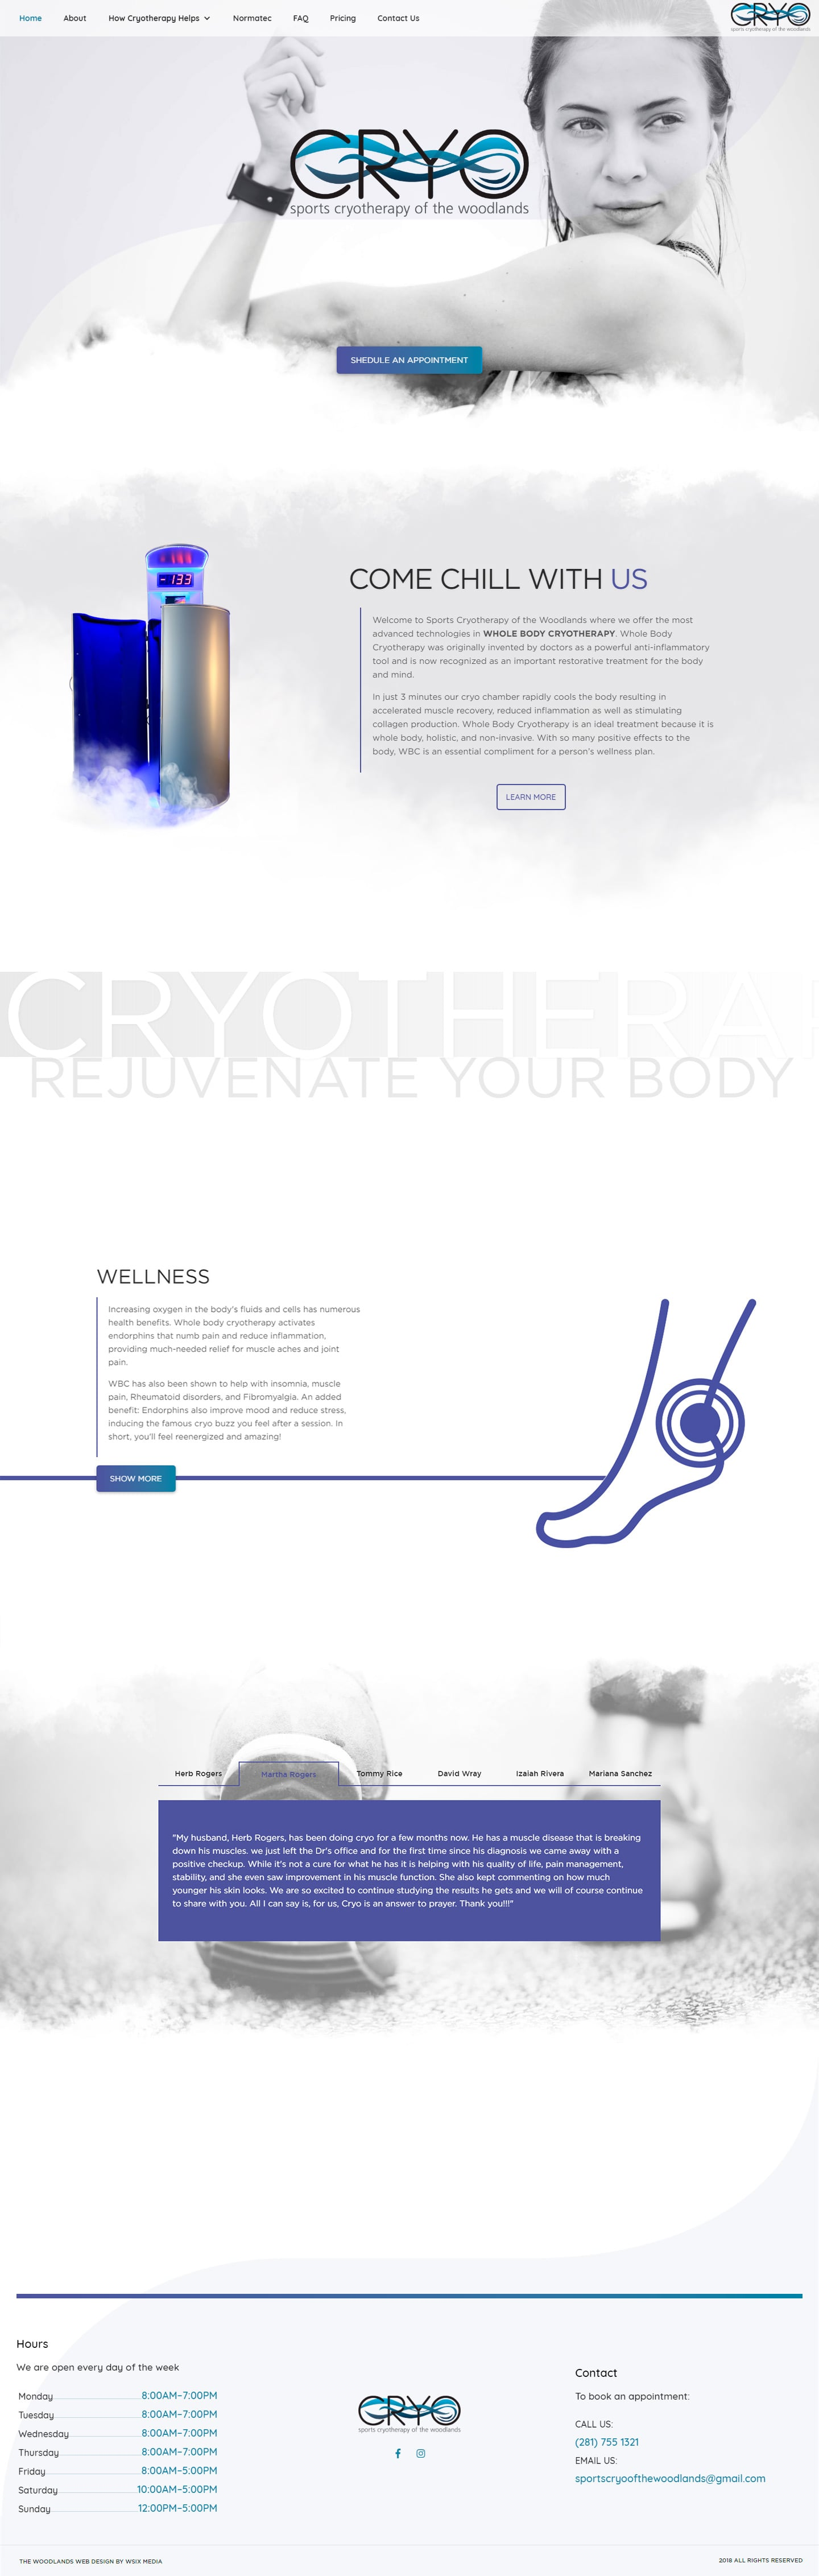 Cryo The Woodlands Web Design Page